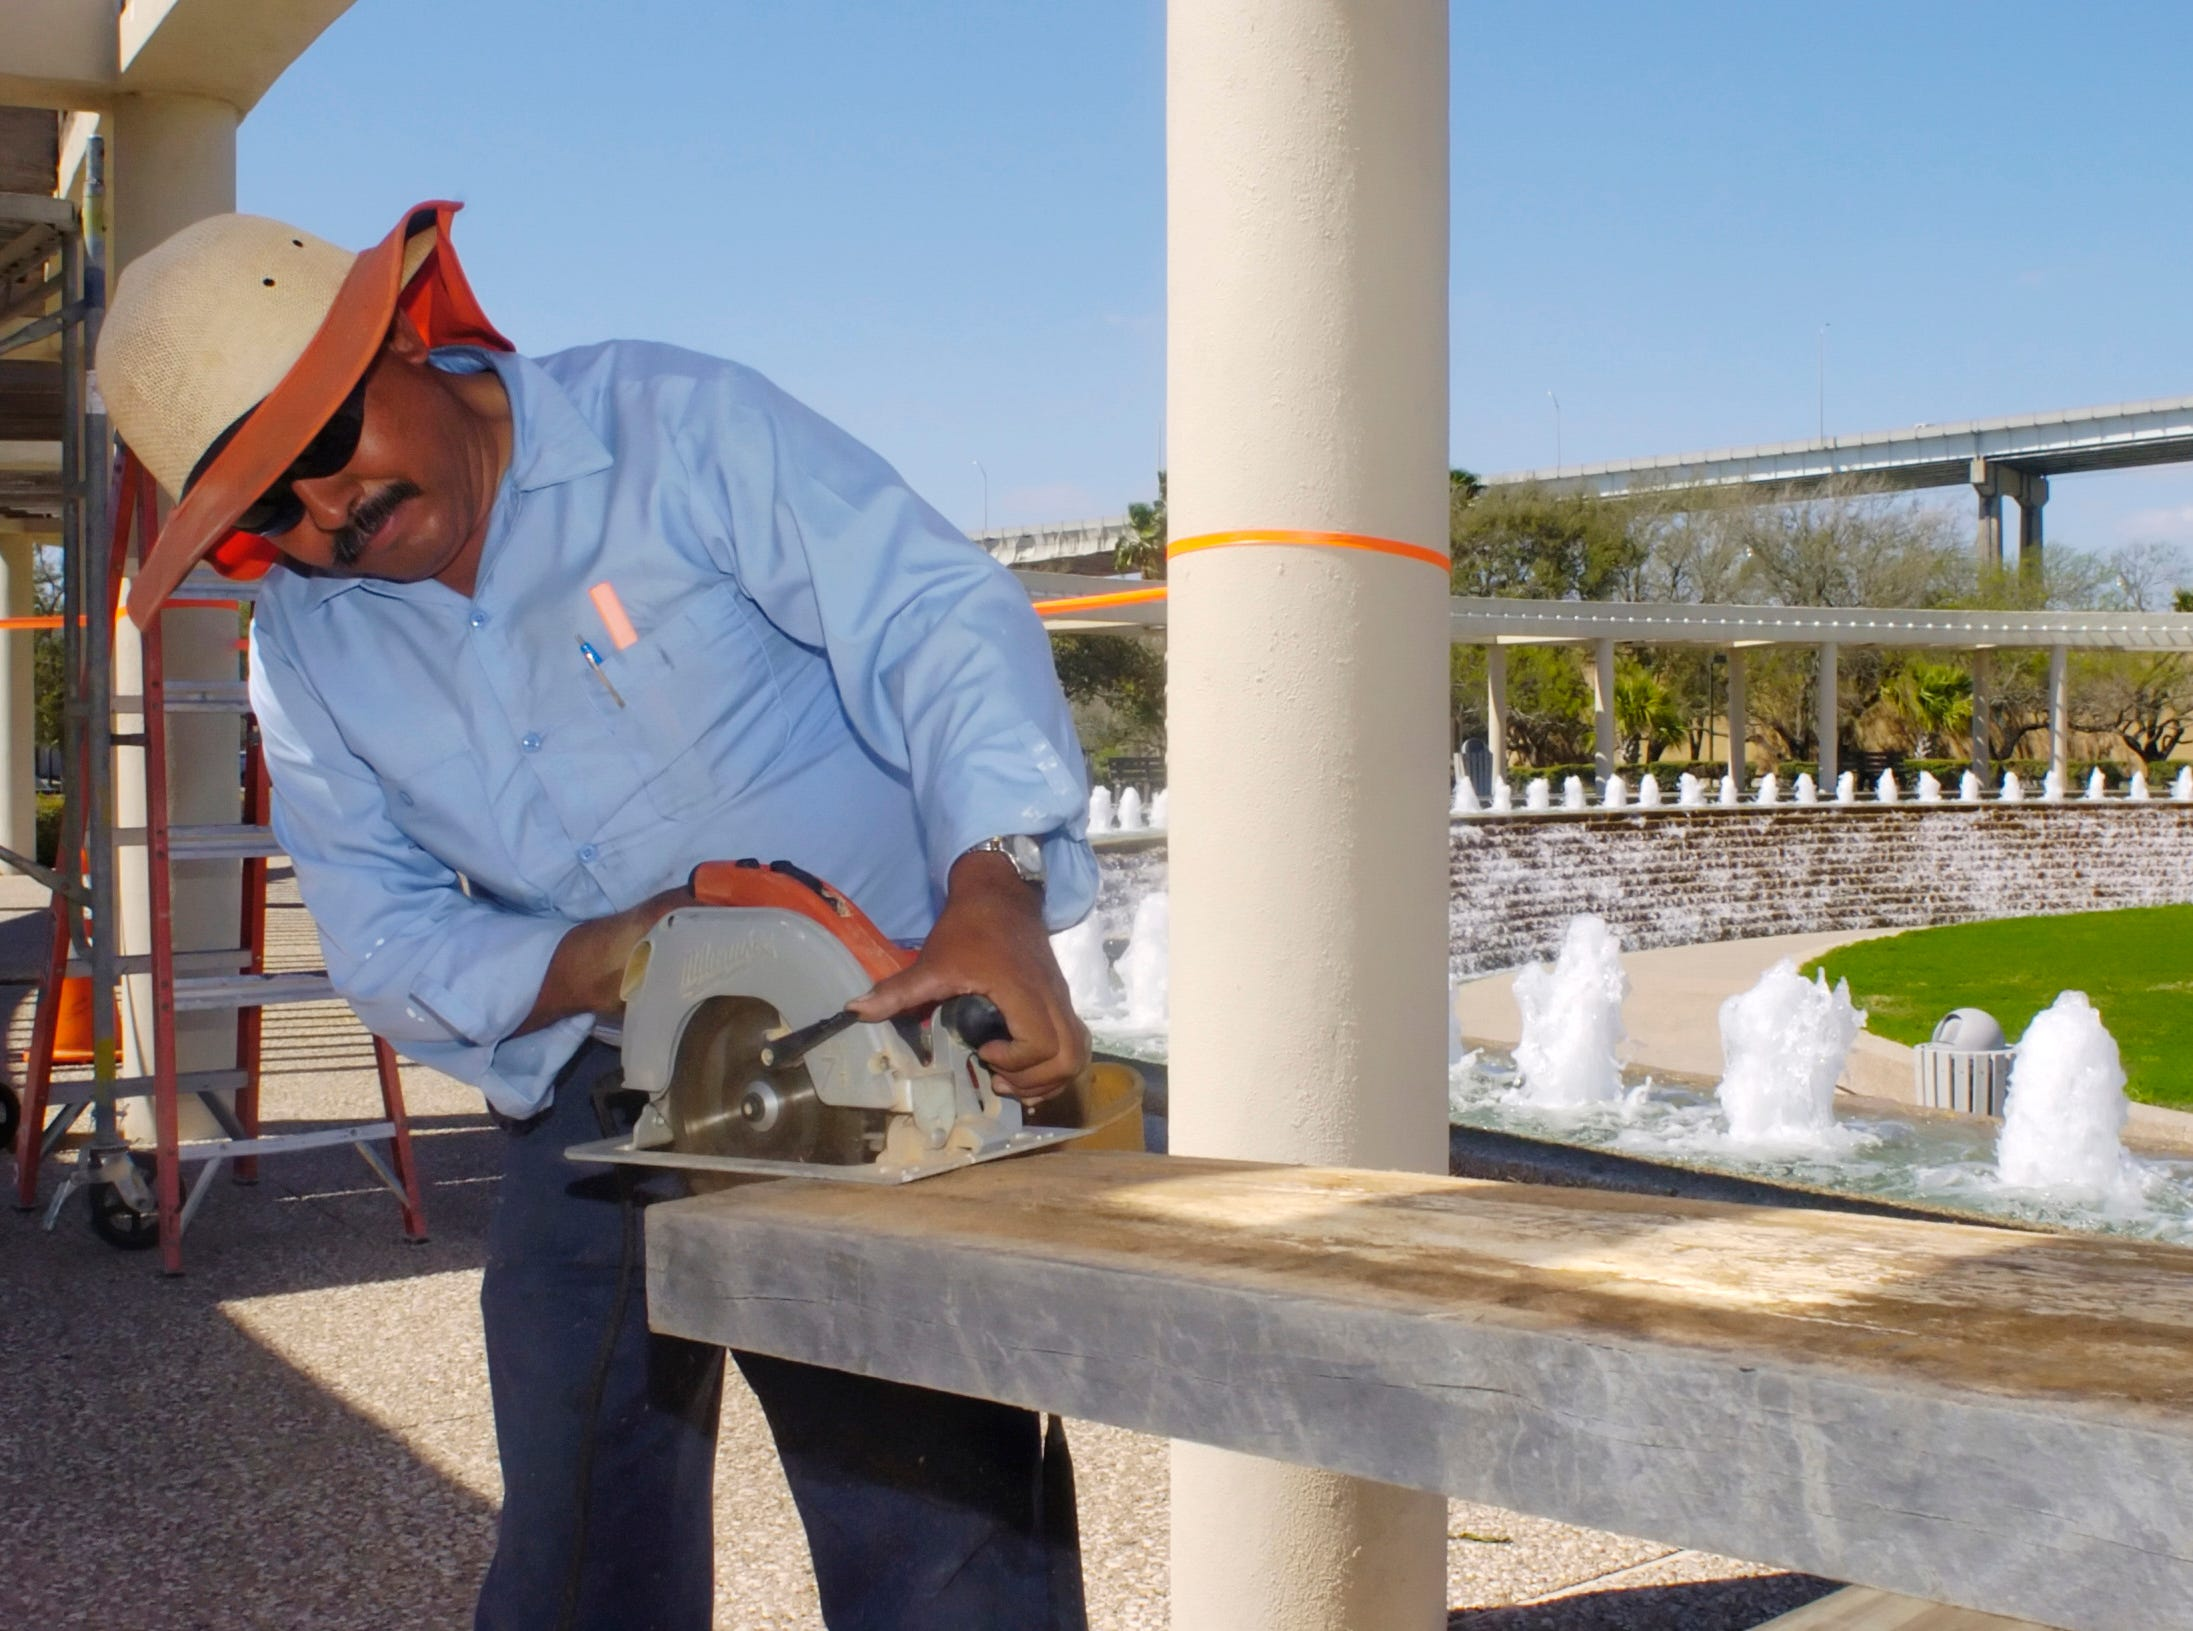 Marcelino Vaca, a city of Corpus Christi Parks Department employee, prepares a wooden beam that will replace rotted wood on an overhang at the Watergarden near the American Bank Center in 2006.